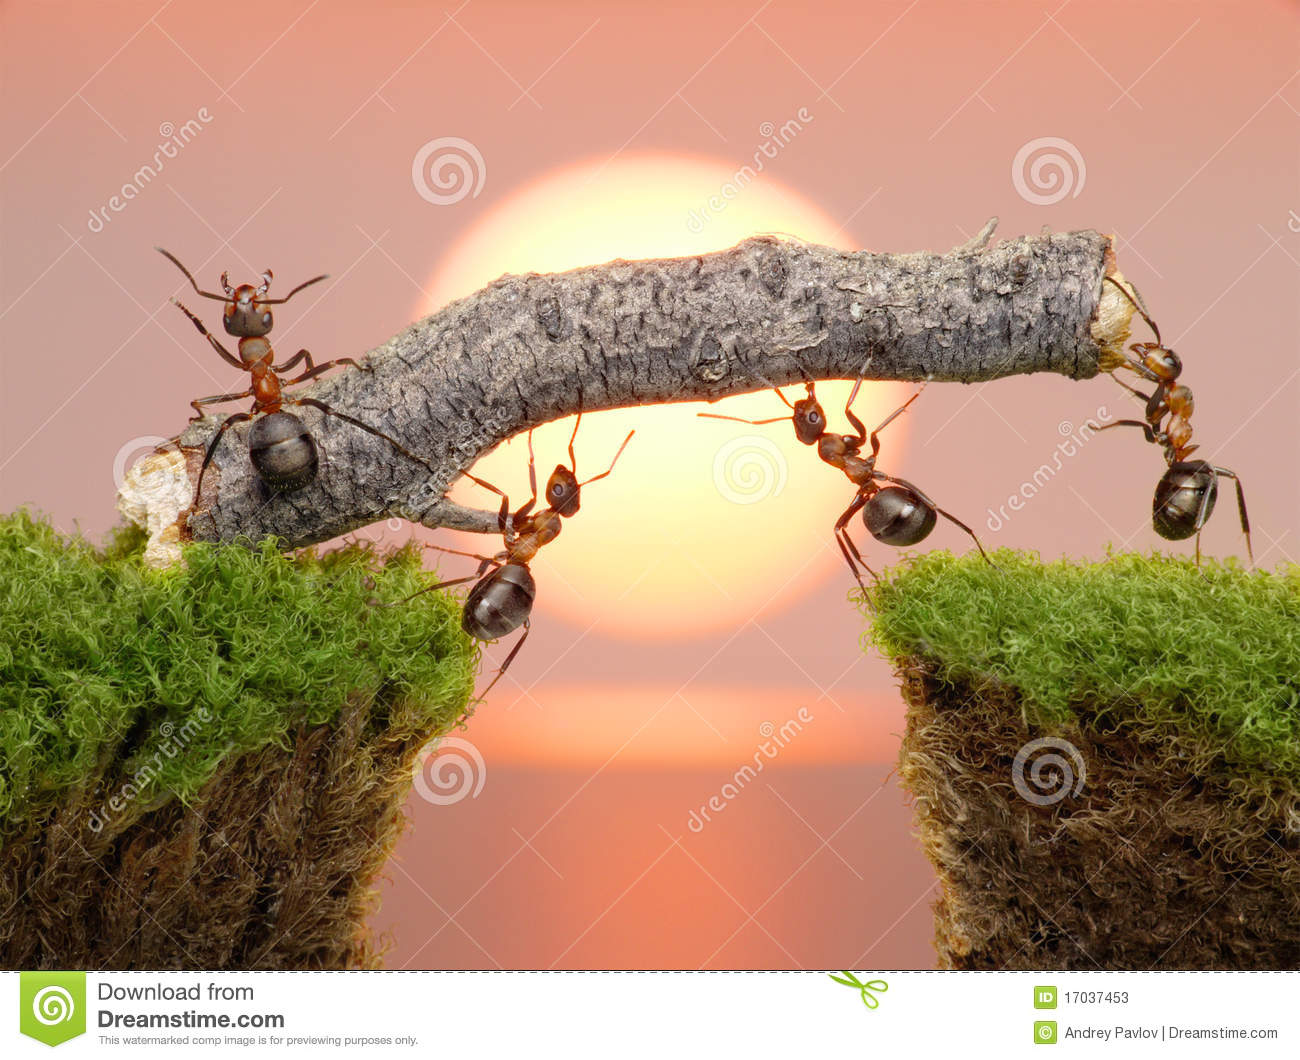 Team Of Ants Work Constructing Bridge, Teamwork Stock Photos.